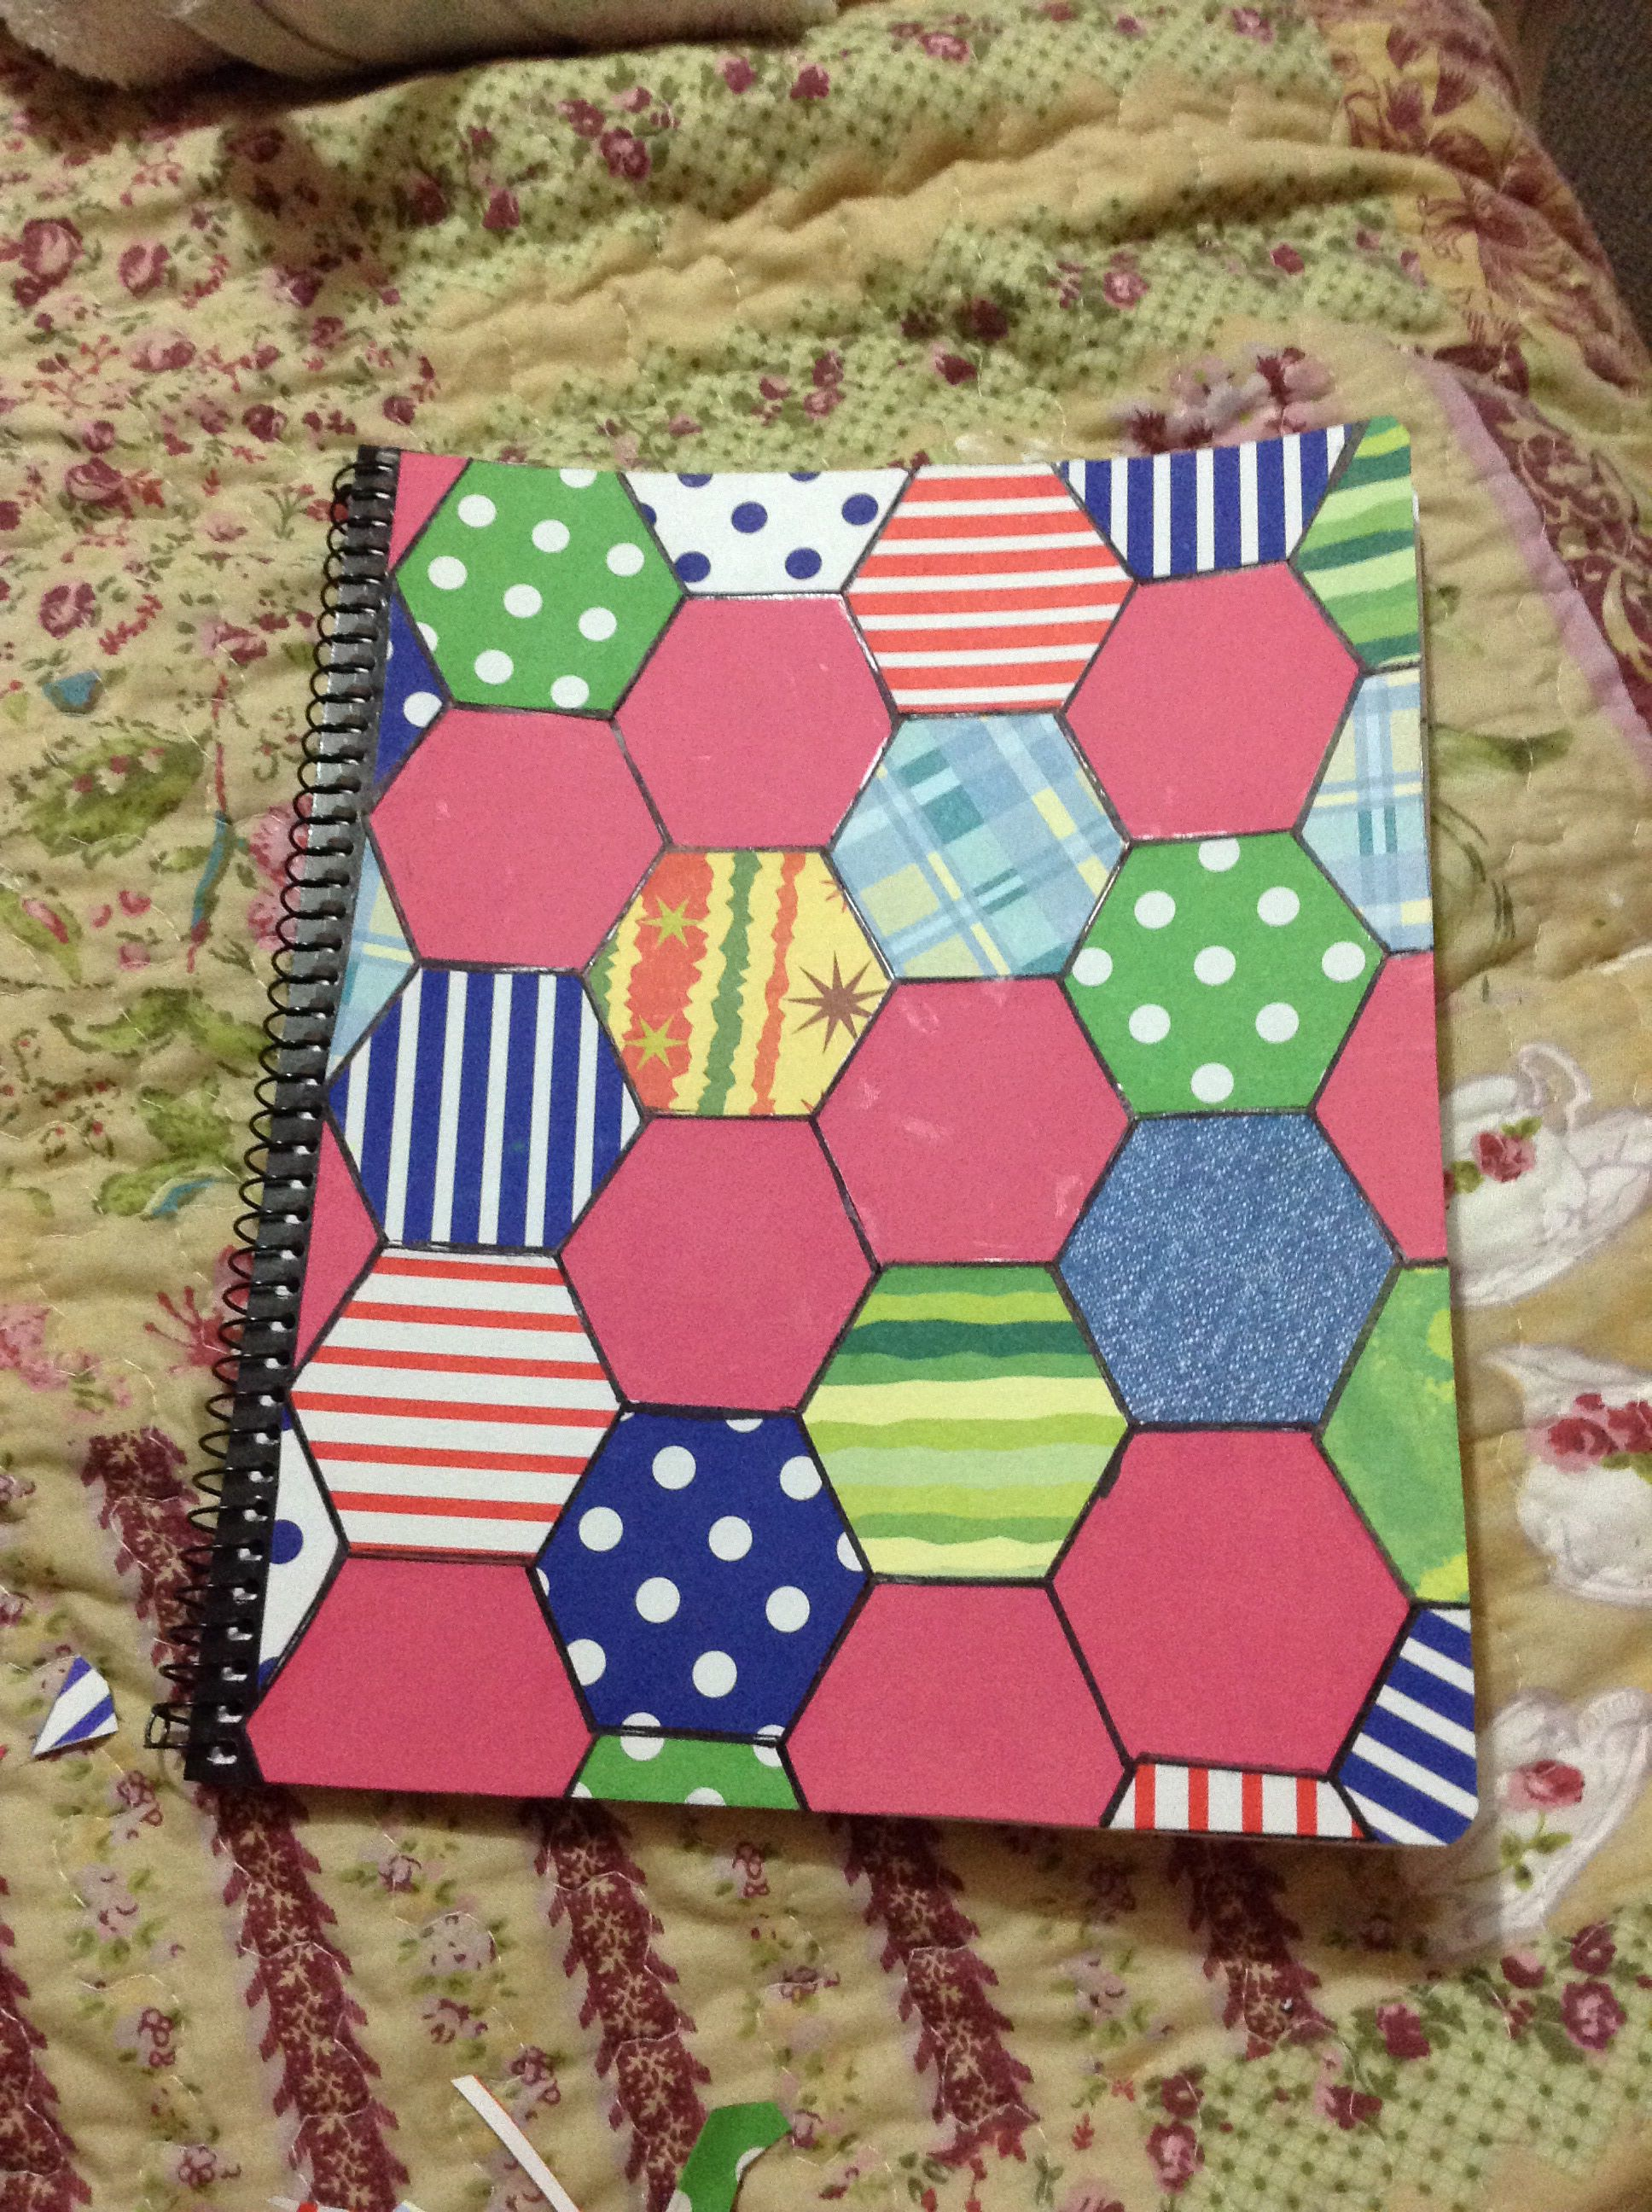 Como Decorar Cuadernos Cuaderno Decorado Manualidades Pinterest Craft